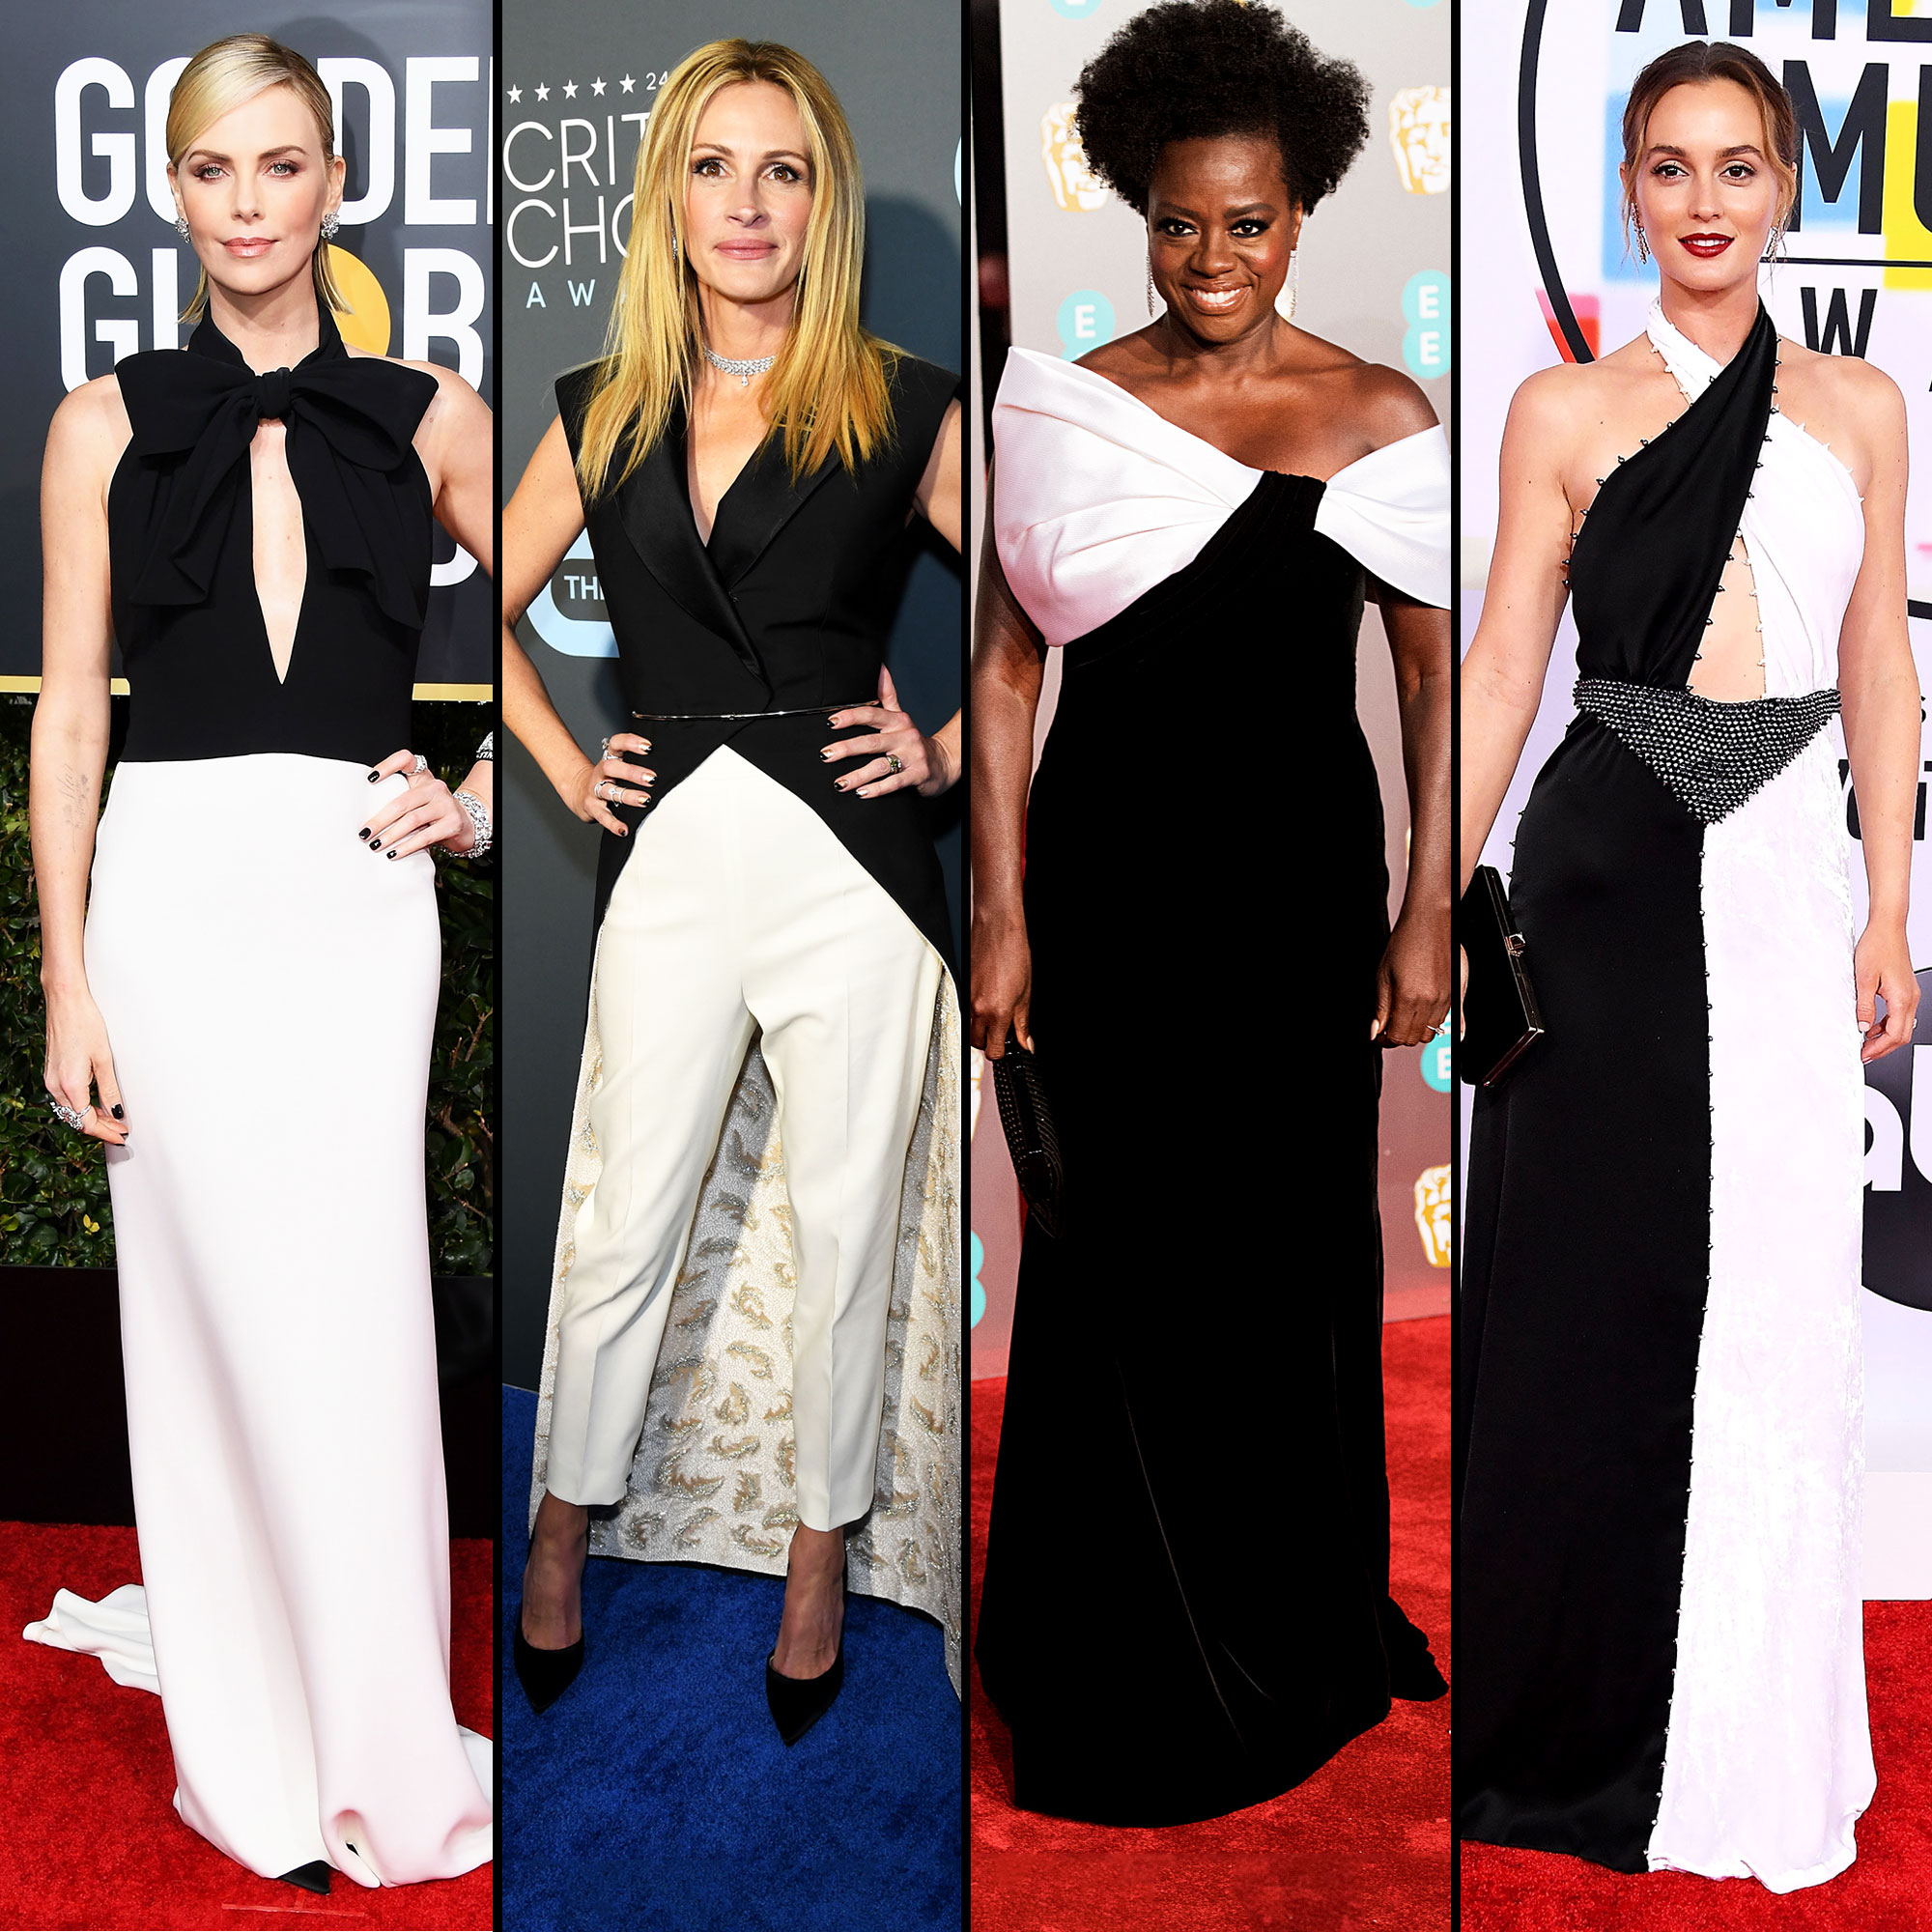 Charlize Theron, Julia Roberts, Viola Davis and Leighton Meester red carpet gallery for Stylish - black and white - Charlize Theron, Julia Roberts, Viola Davis and Leighton Meester